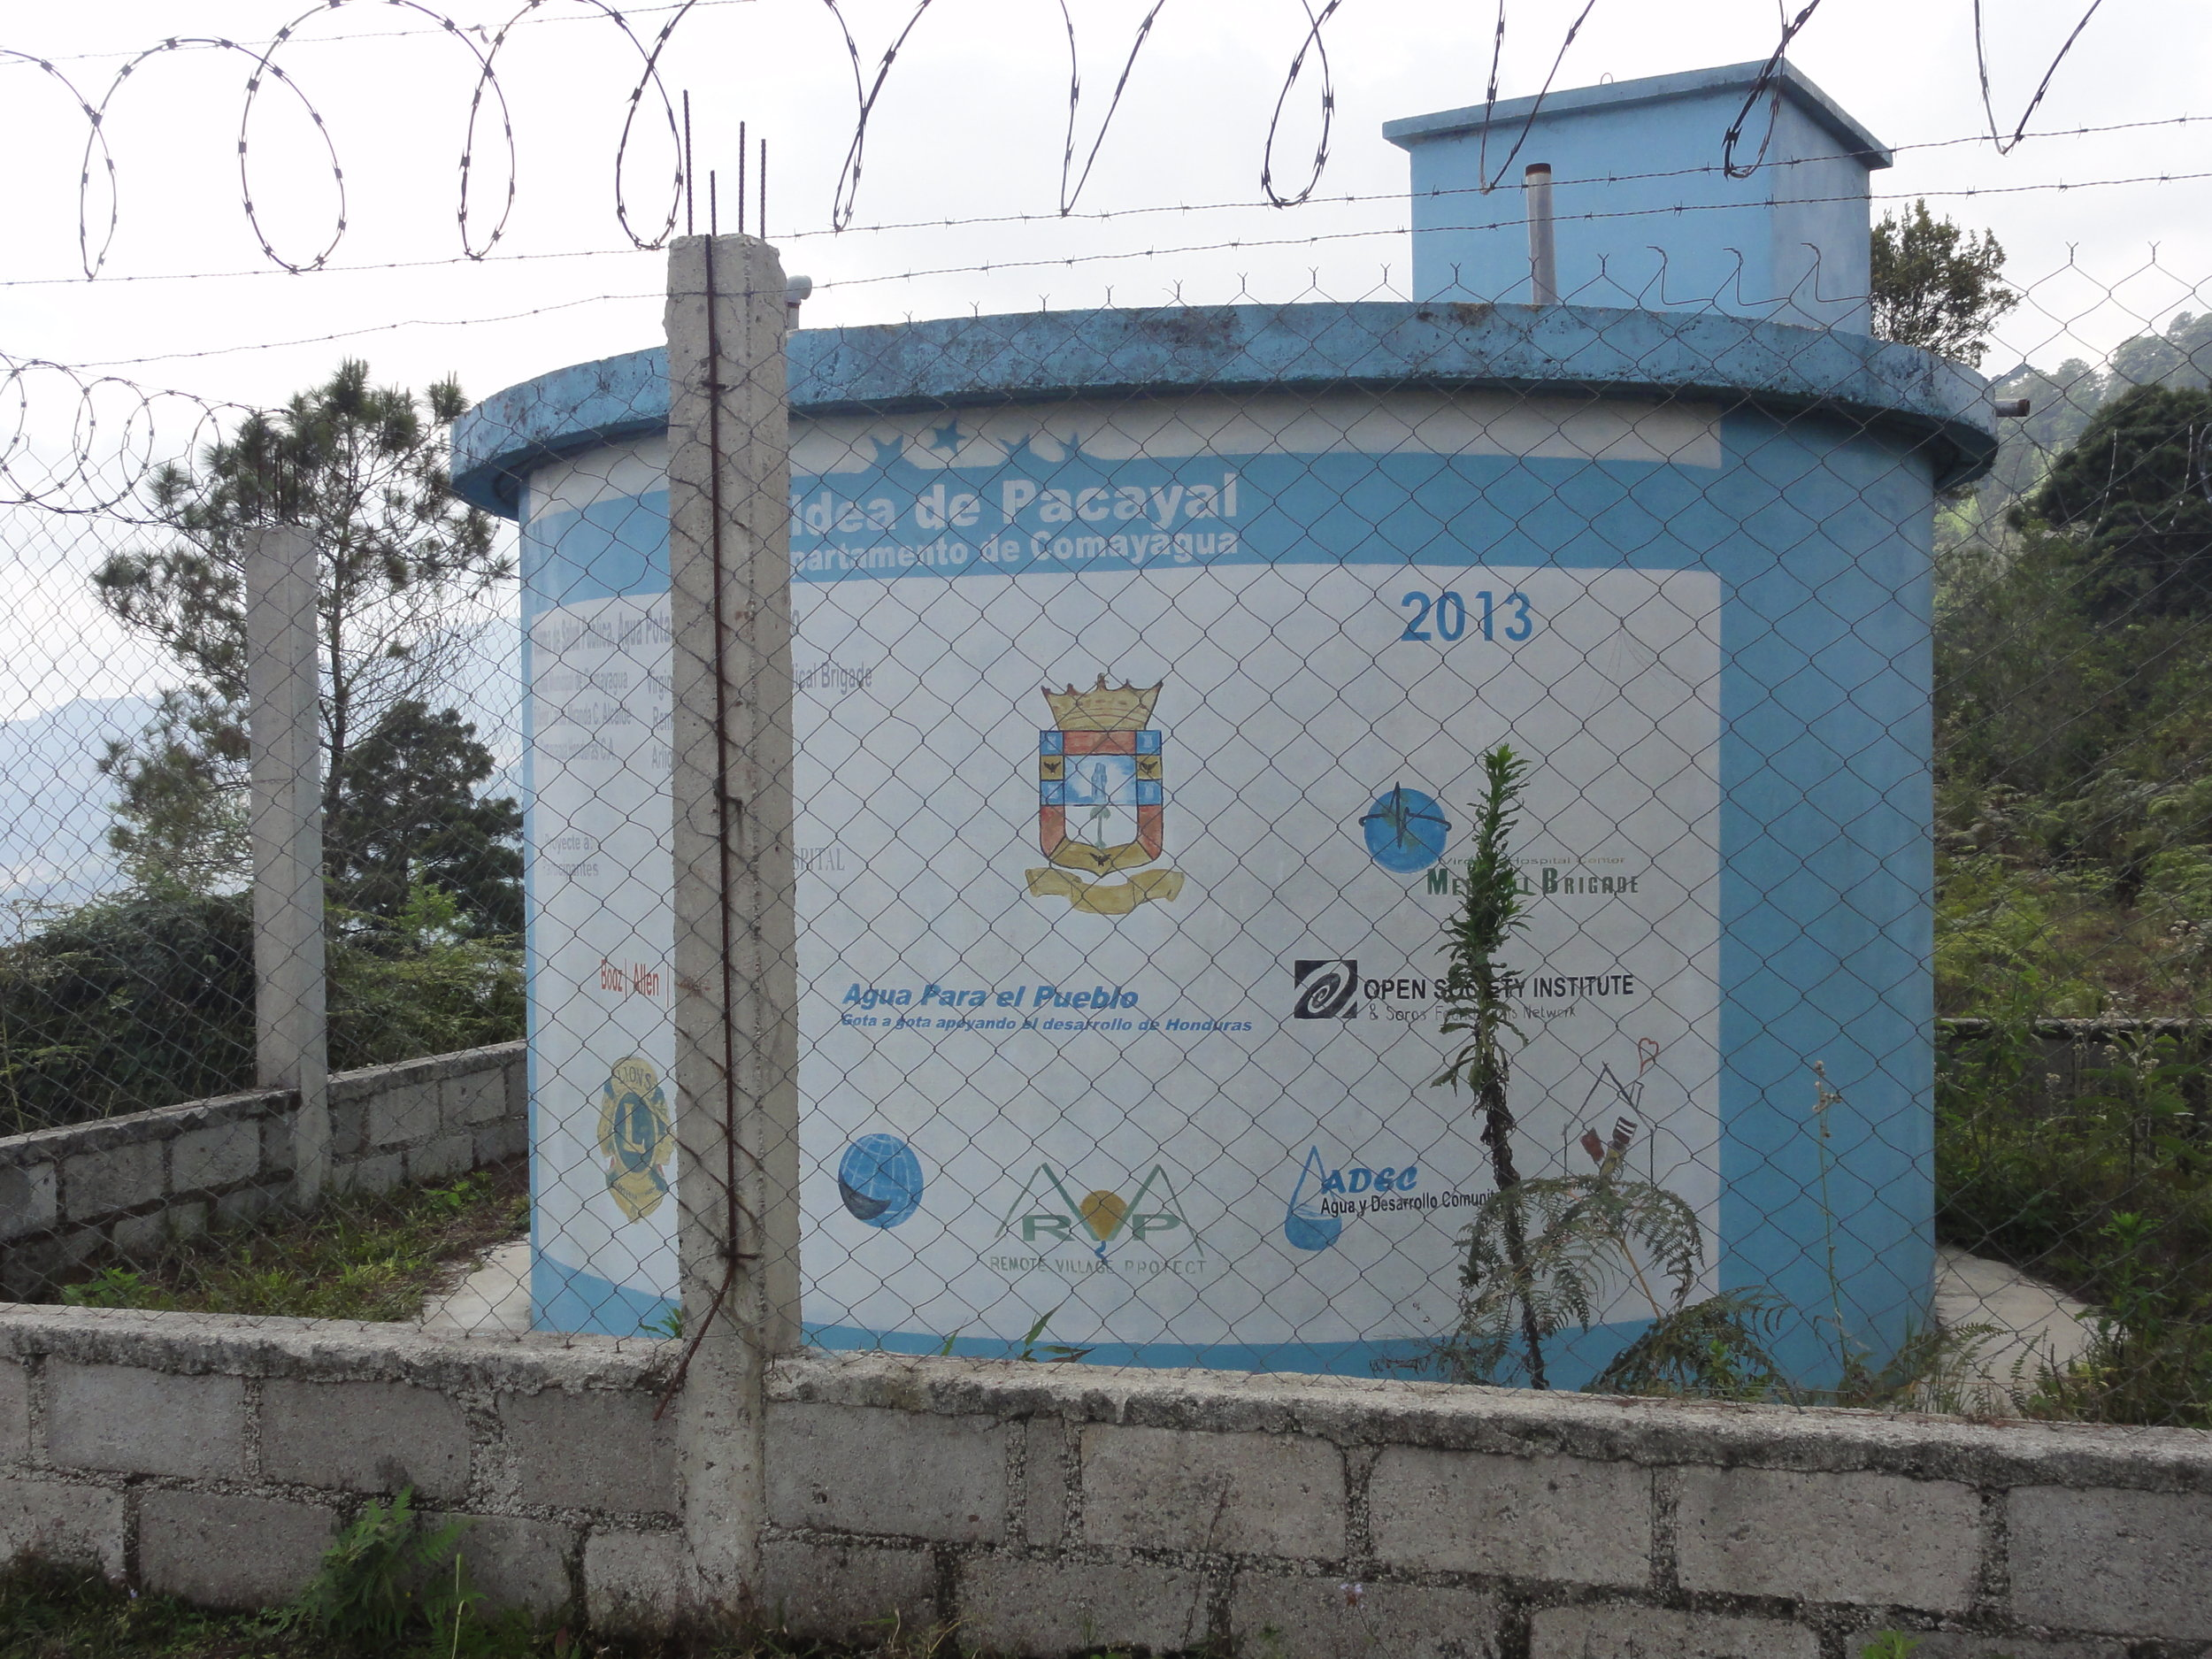 One of the Brgiade's water tanks